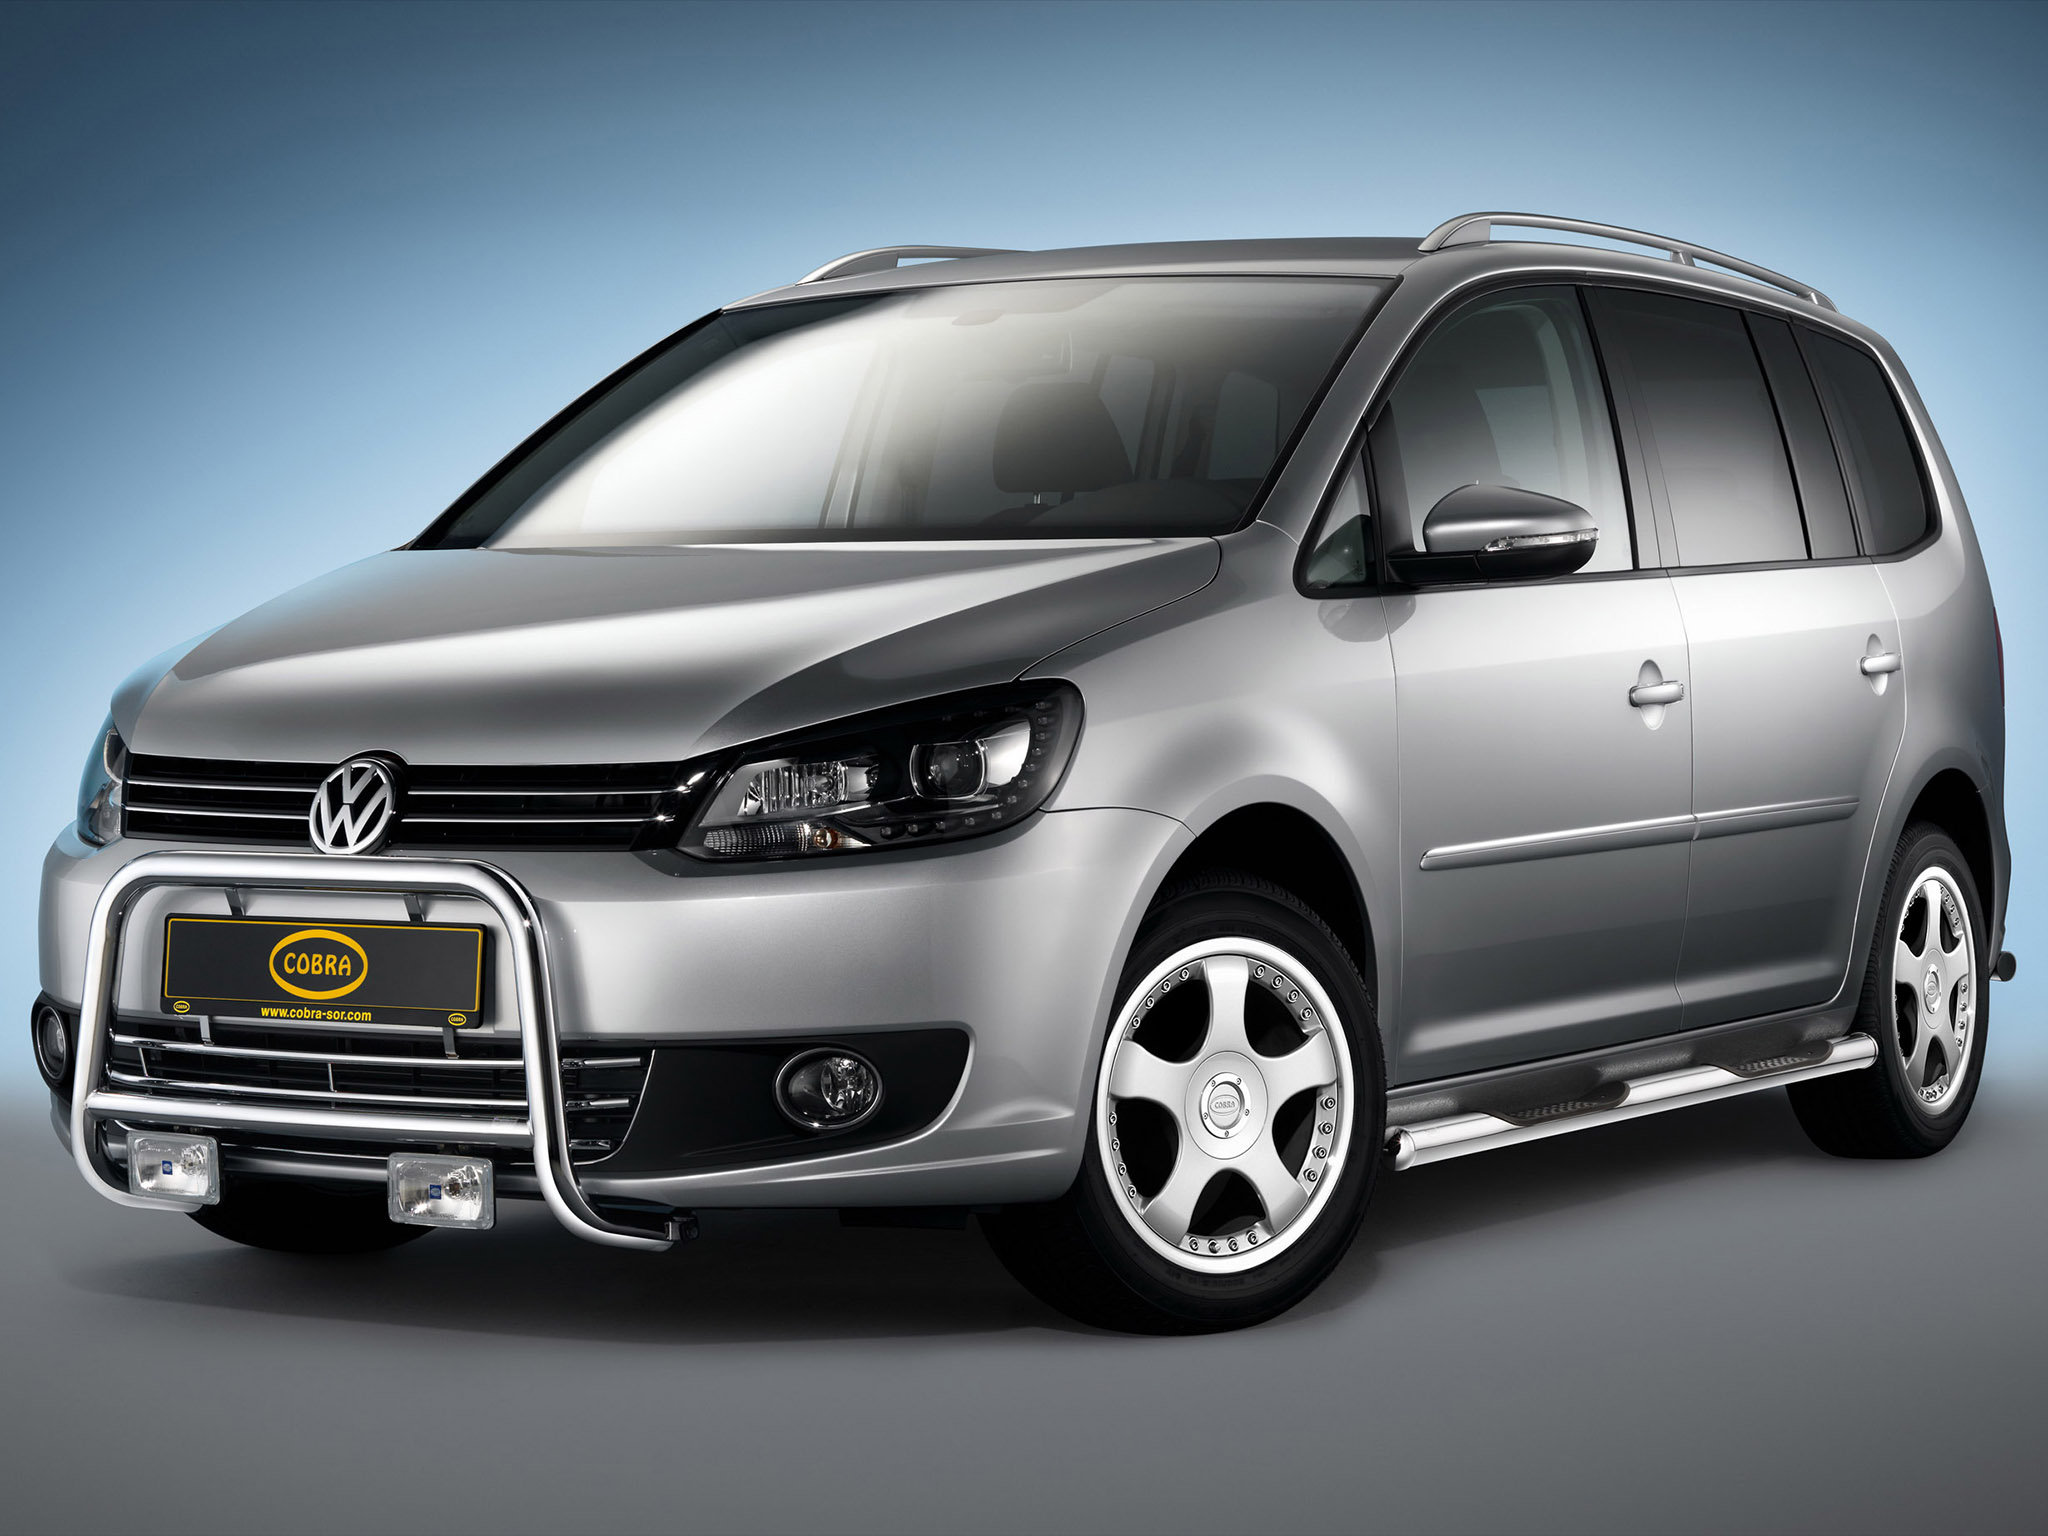 cobra volkswagen touran 2011 cobra volkswagen touran 2011 photo 04 car in pictures car photo. Black Bedroom Furniture Sets. Home Design Ideas